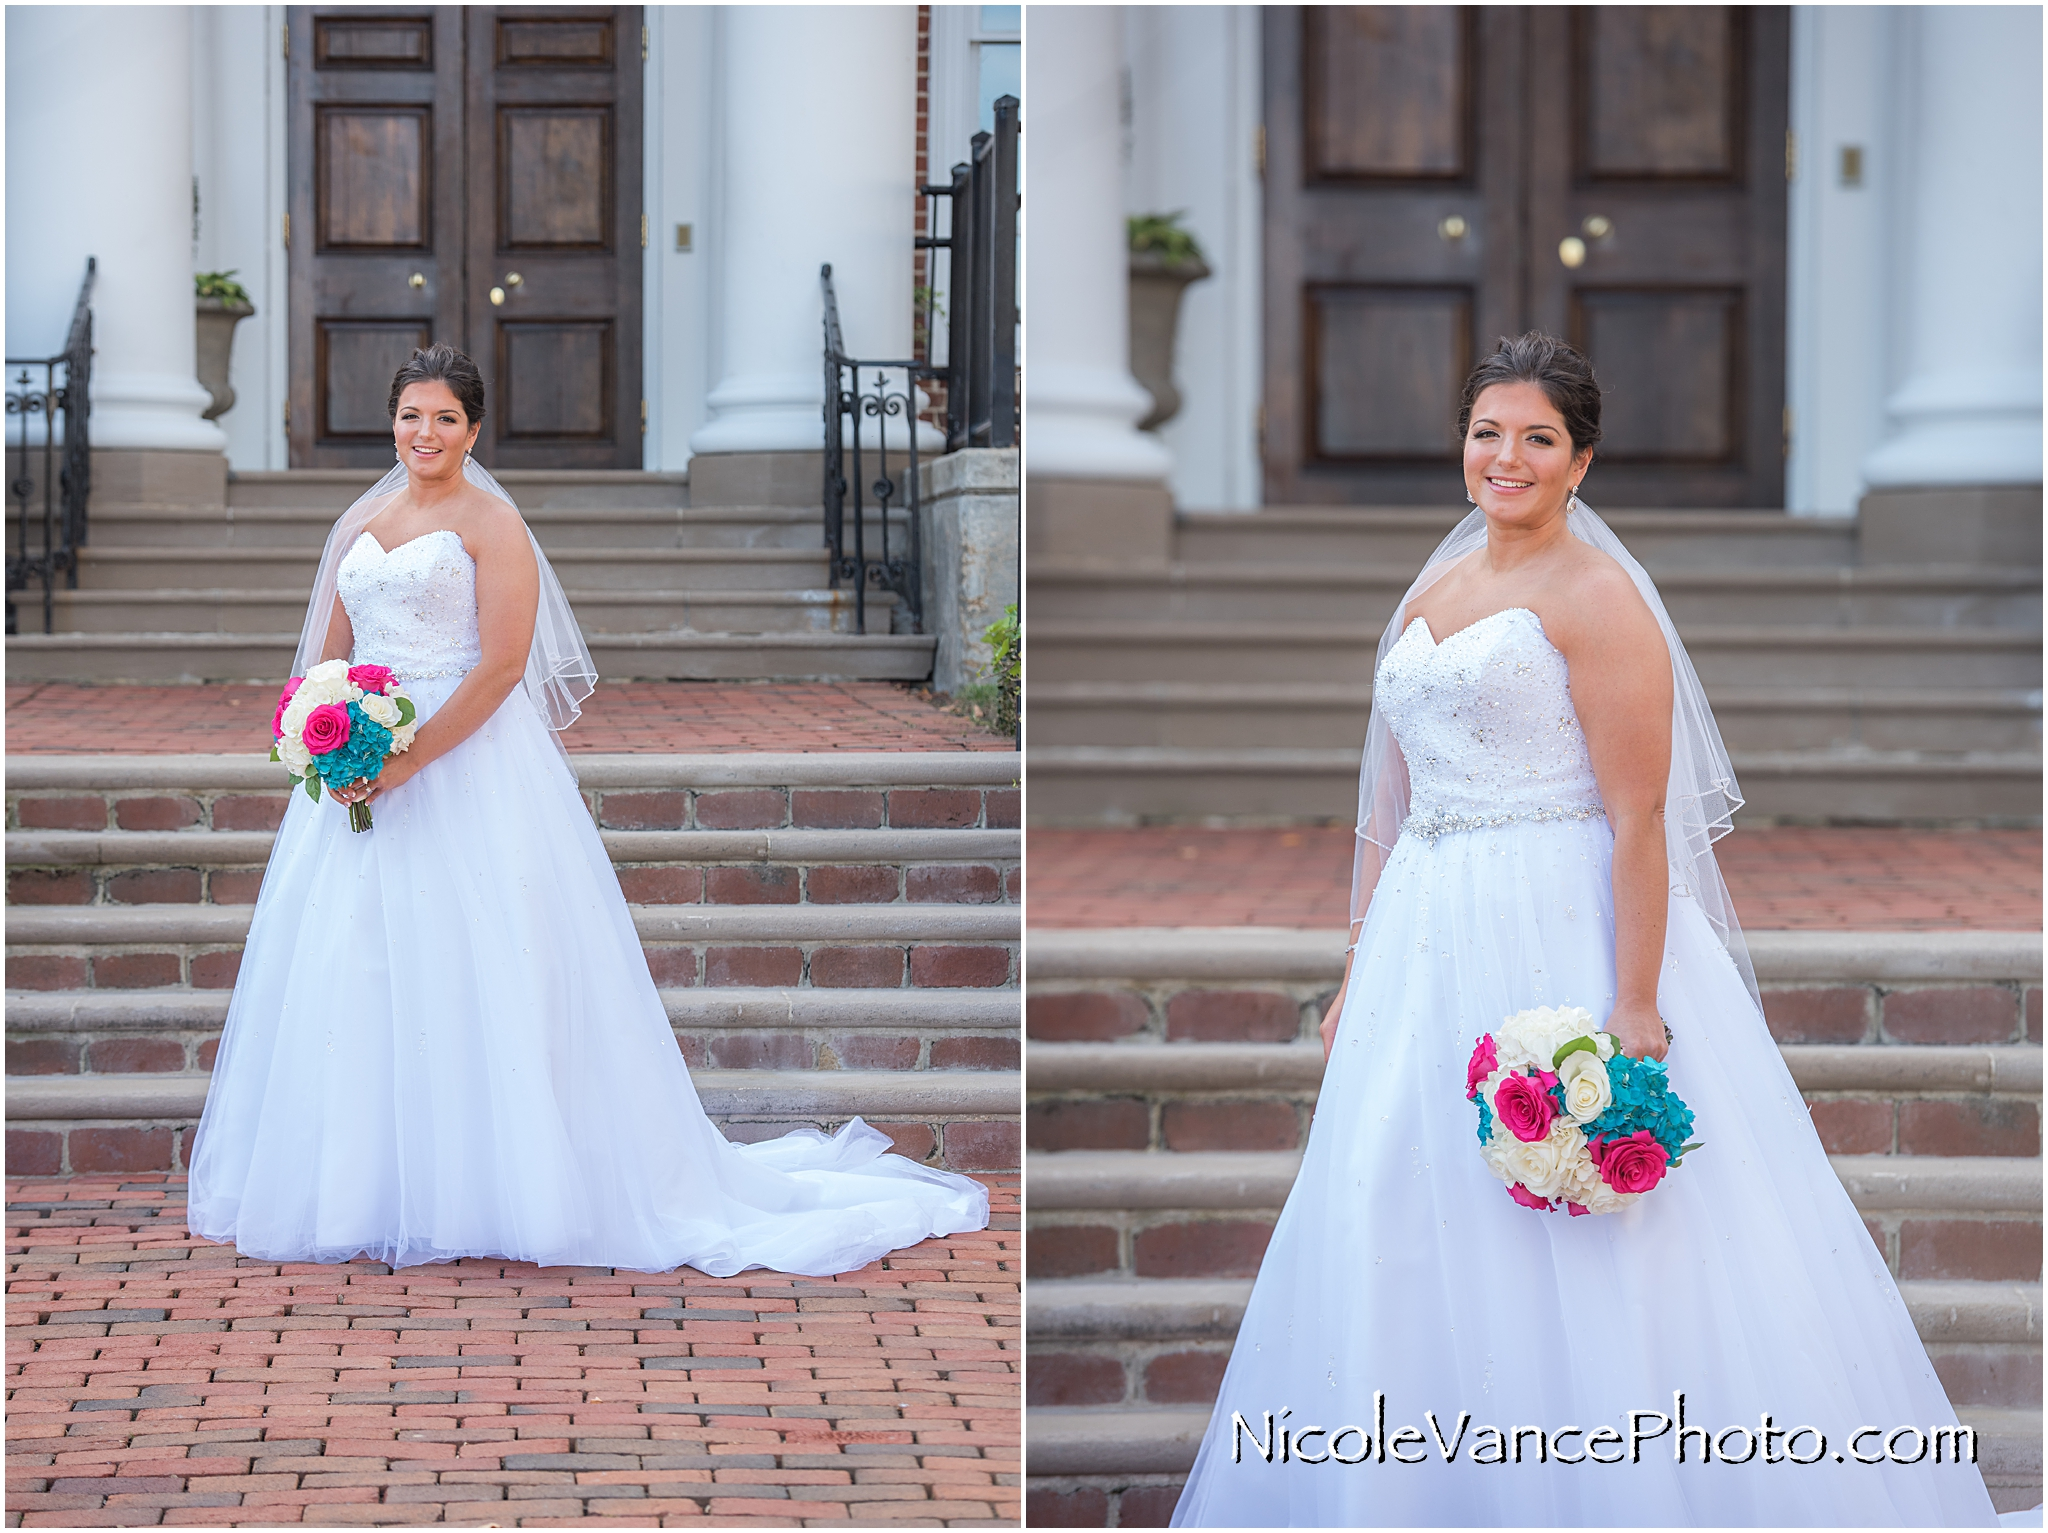 Bridal portrait on the steps at Virginia Crossings.